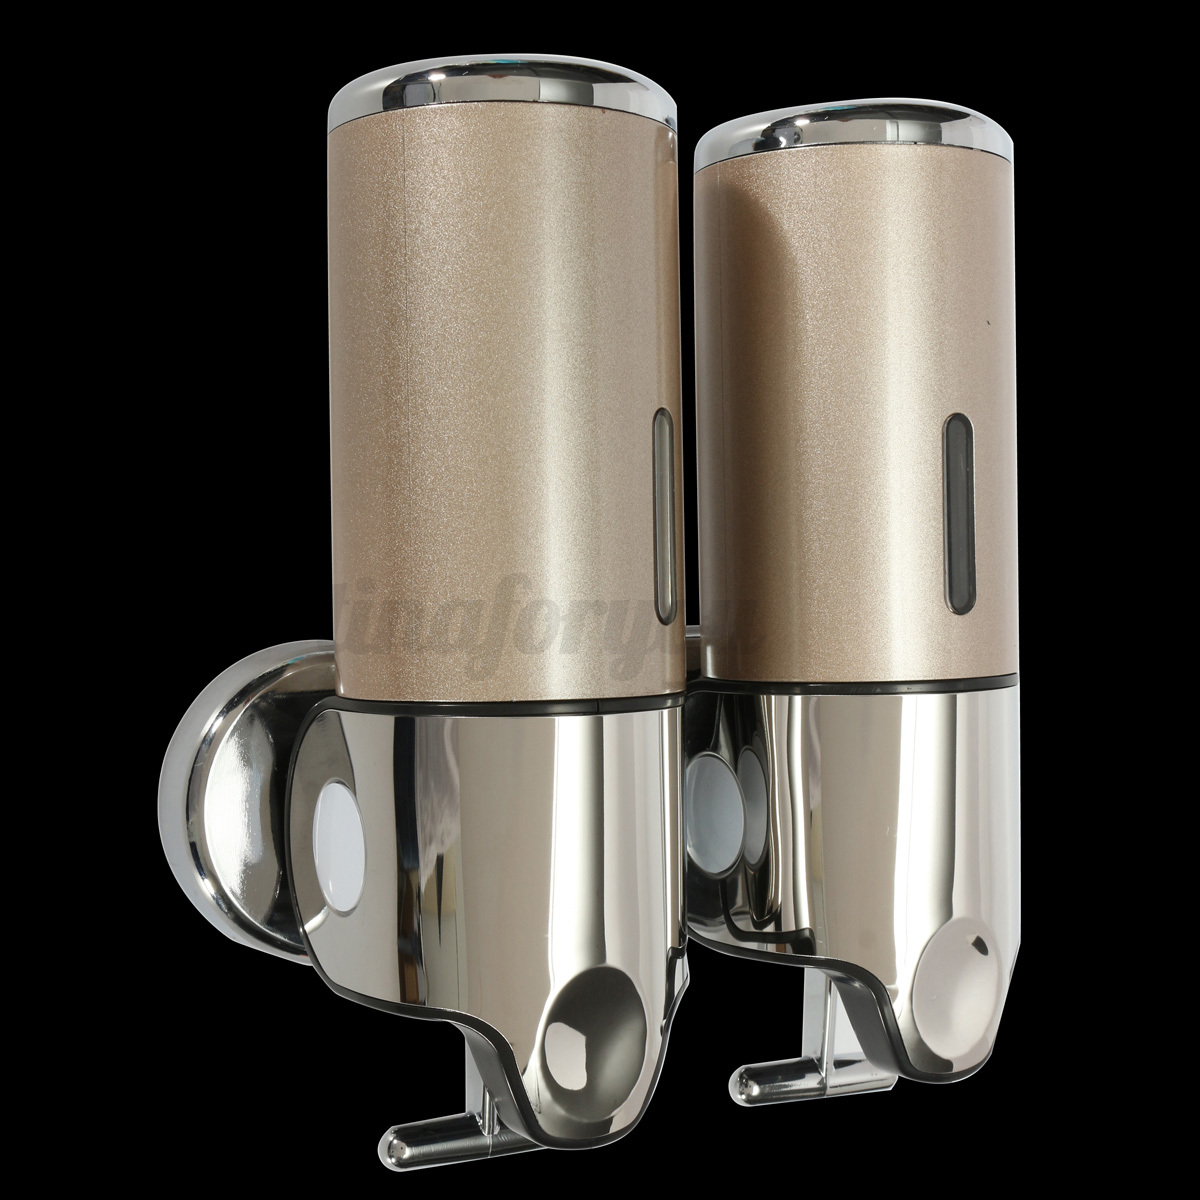 Soap And Shampoo Dispensers For Showers 3 Bottles Wall Mounted Hotel Bathroom Soap Dispenser 500ml